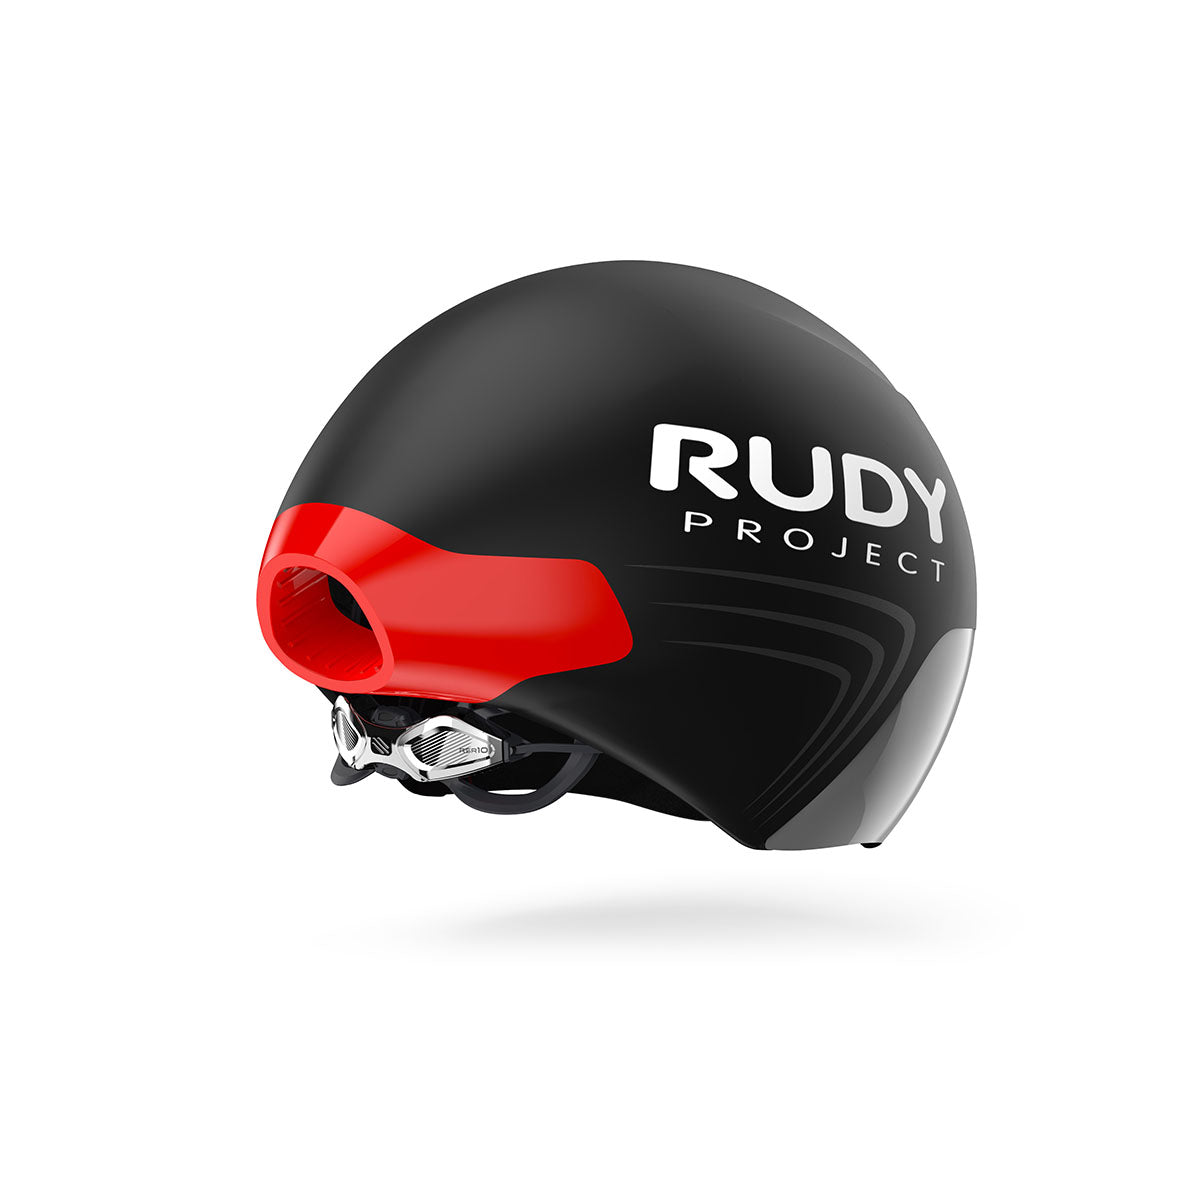 Rudy Project - The Wing - color: Black - photo angle: Back Angle Variant Hover Image